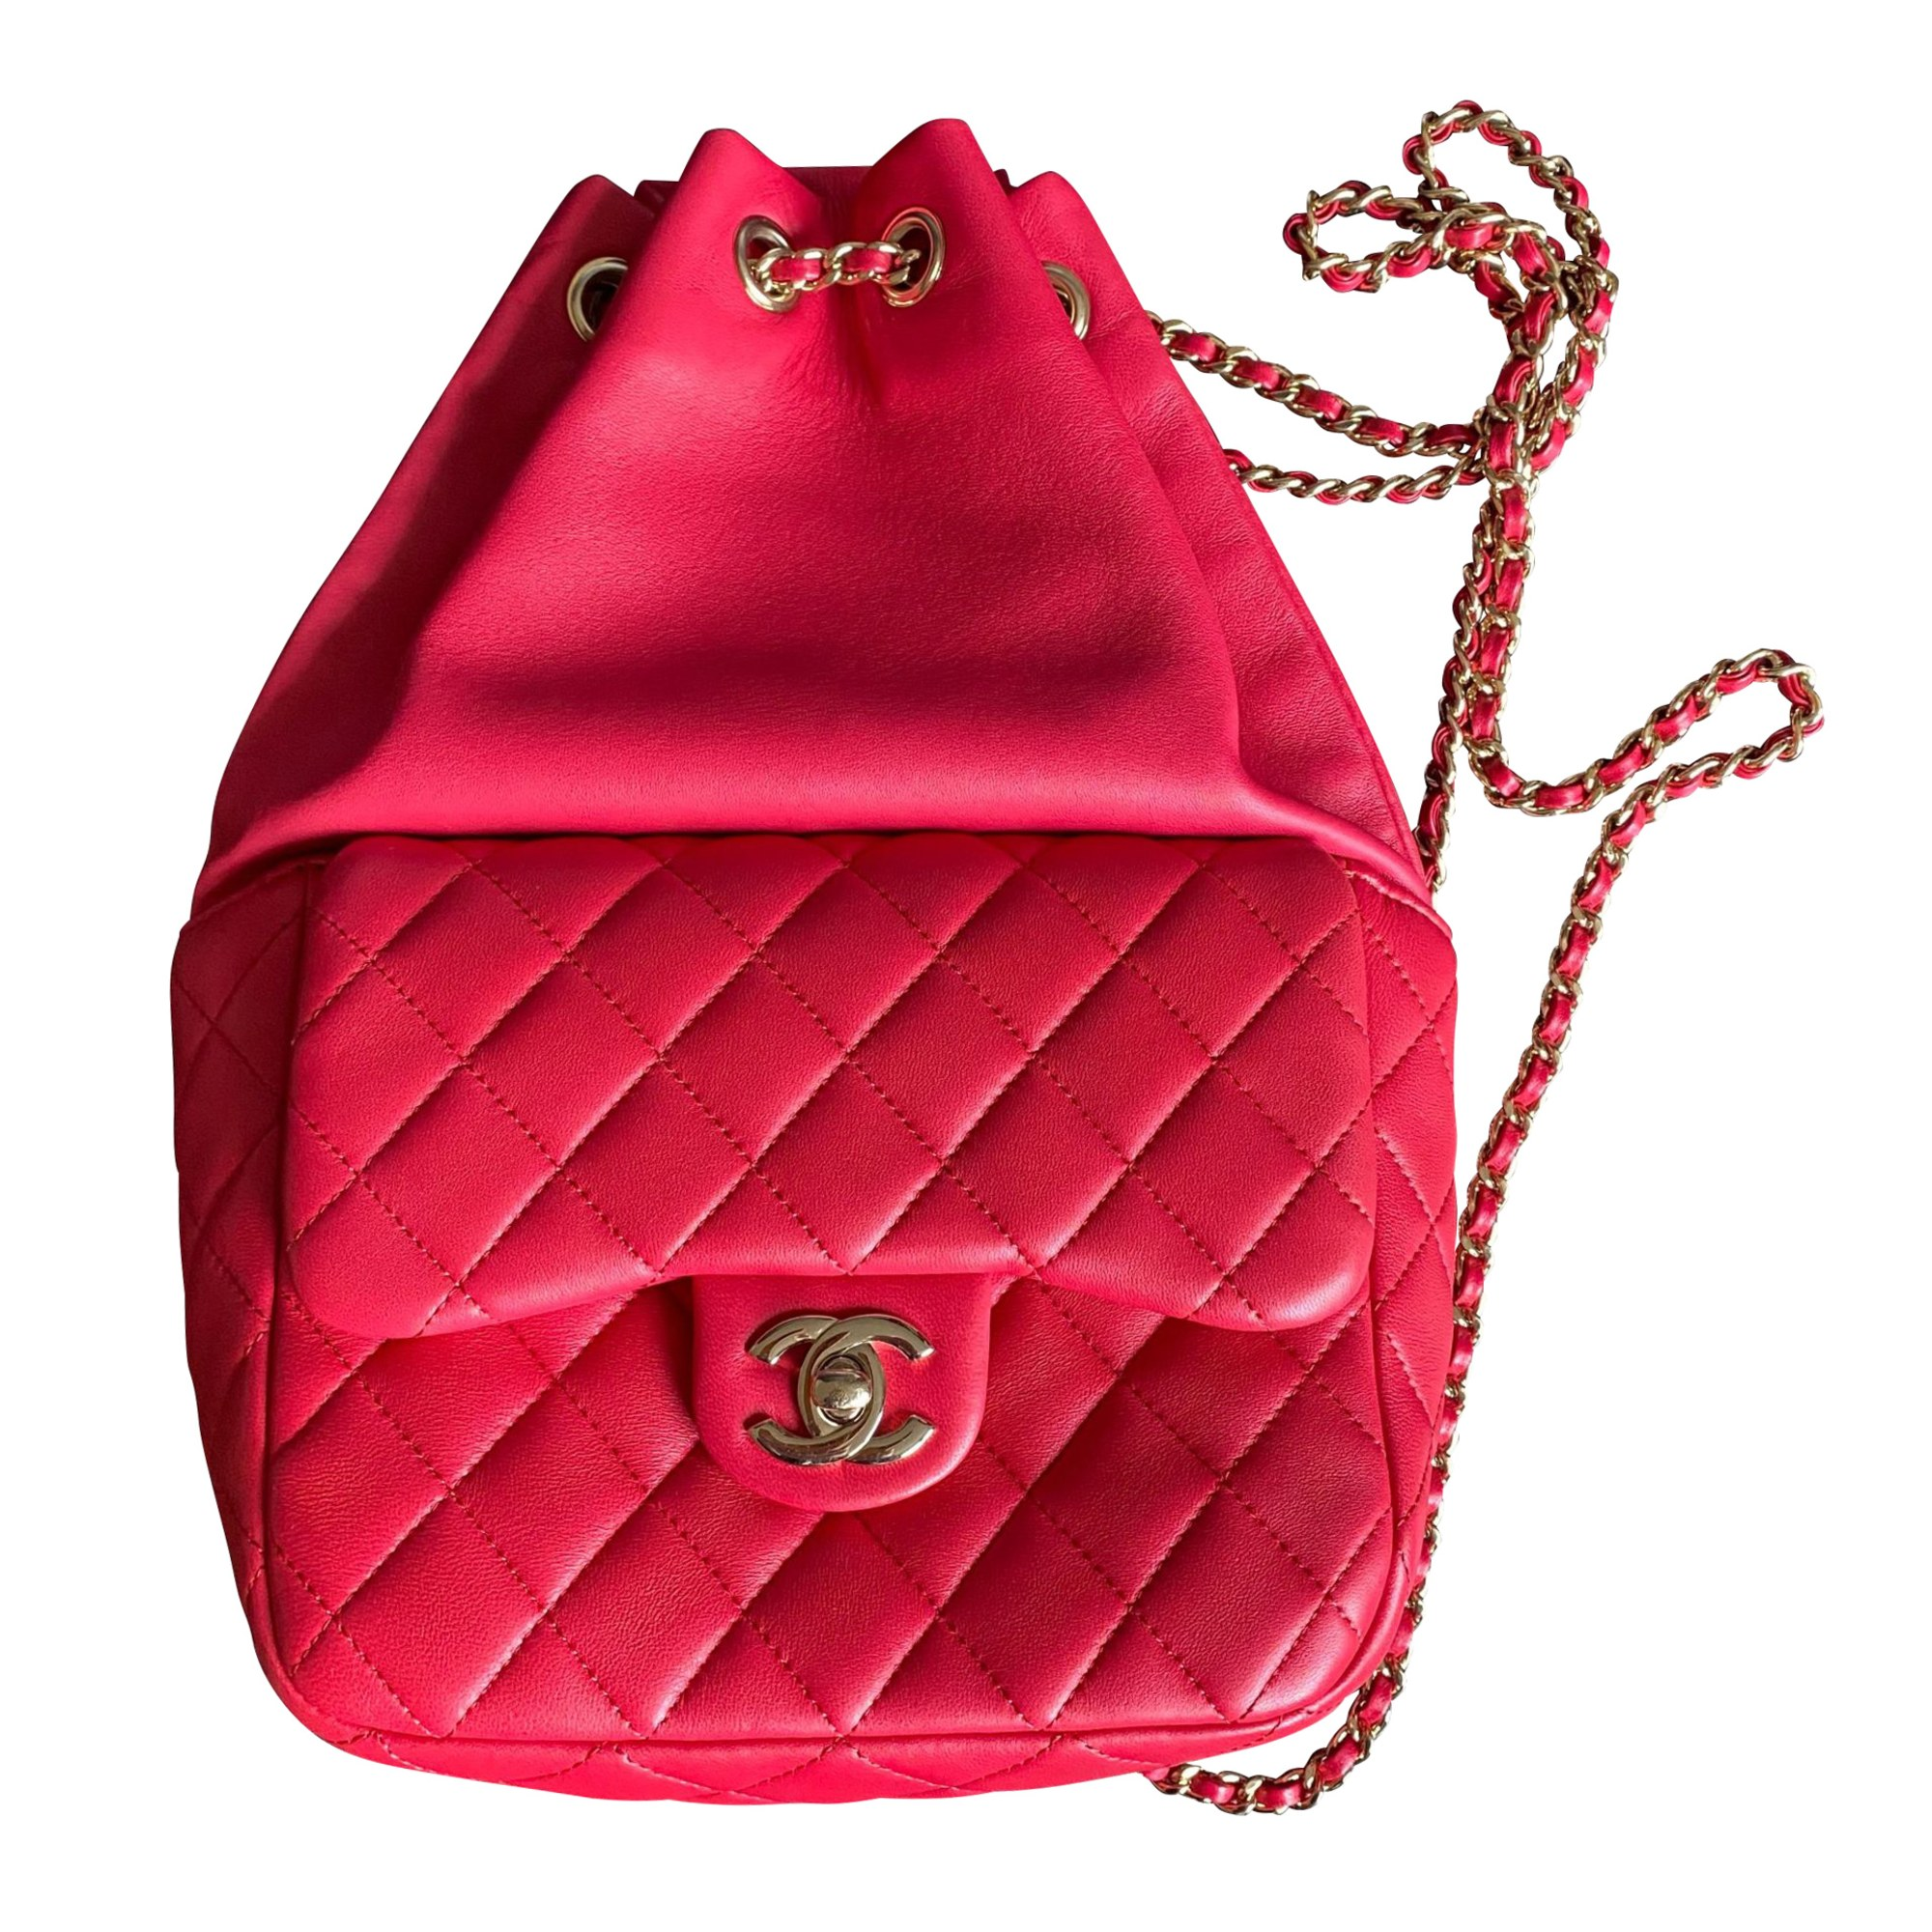 Backpack CHANEL Timeless - Classique Red, burgundy